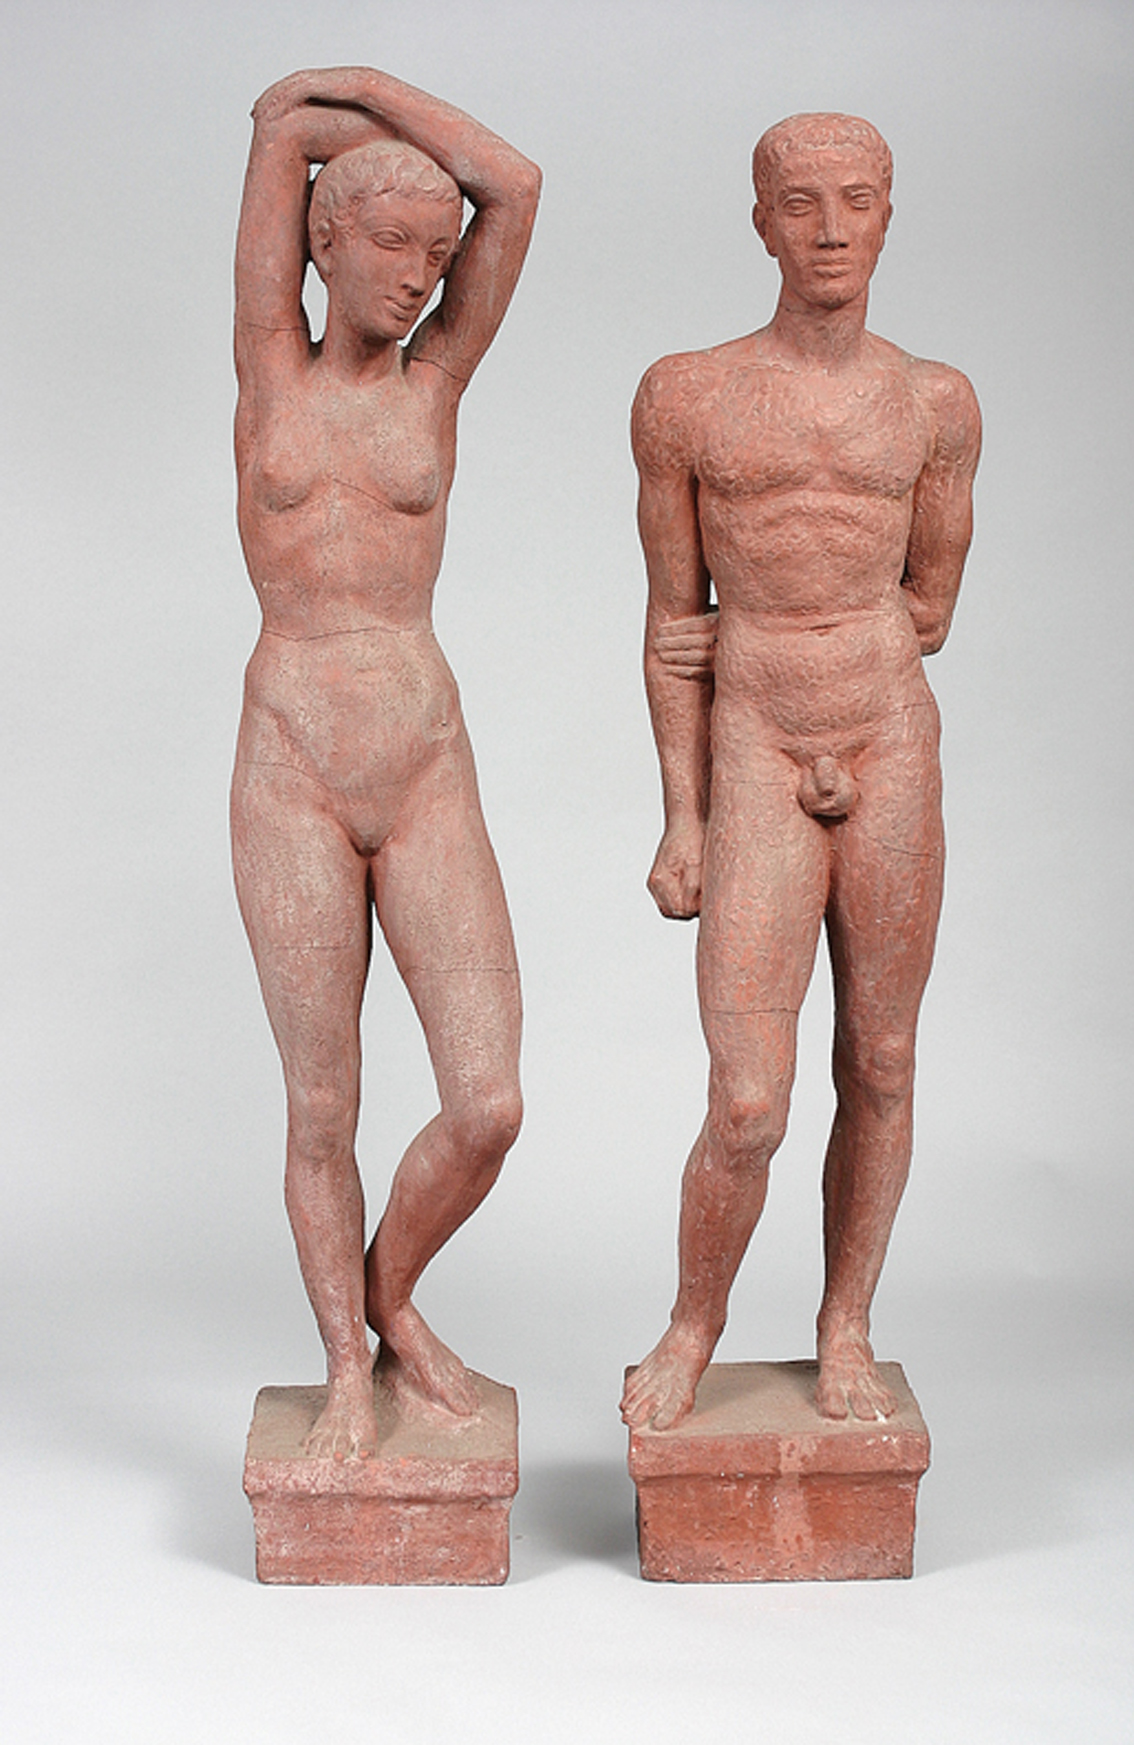 A pair of expressive figures 'female and male nude figures, standing'